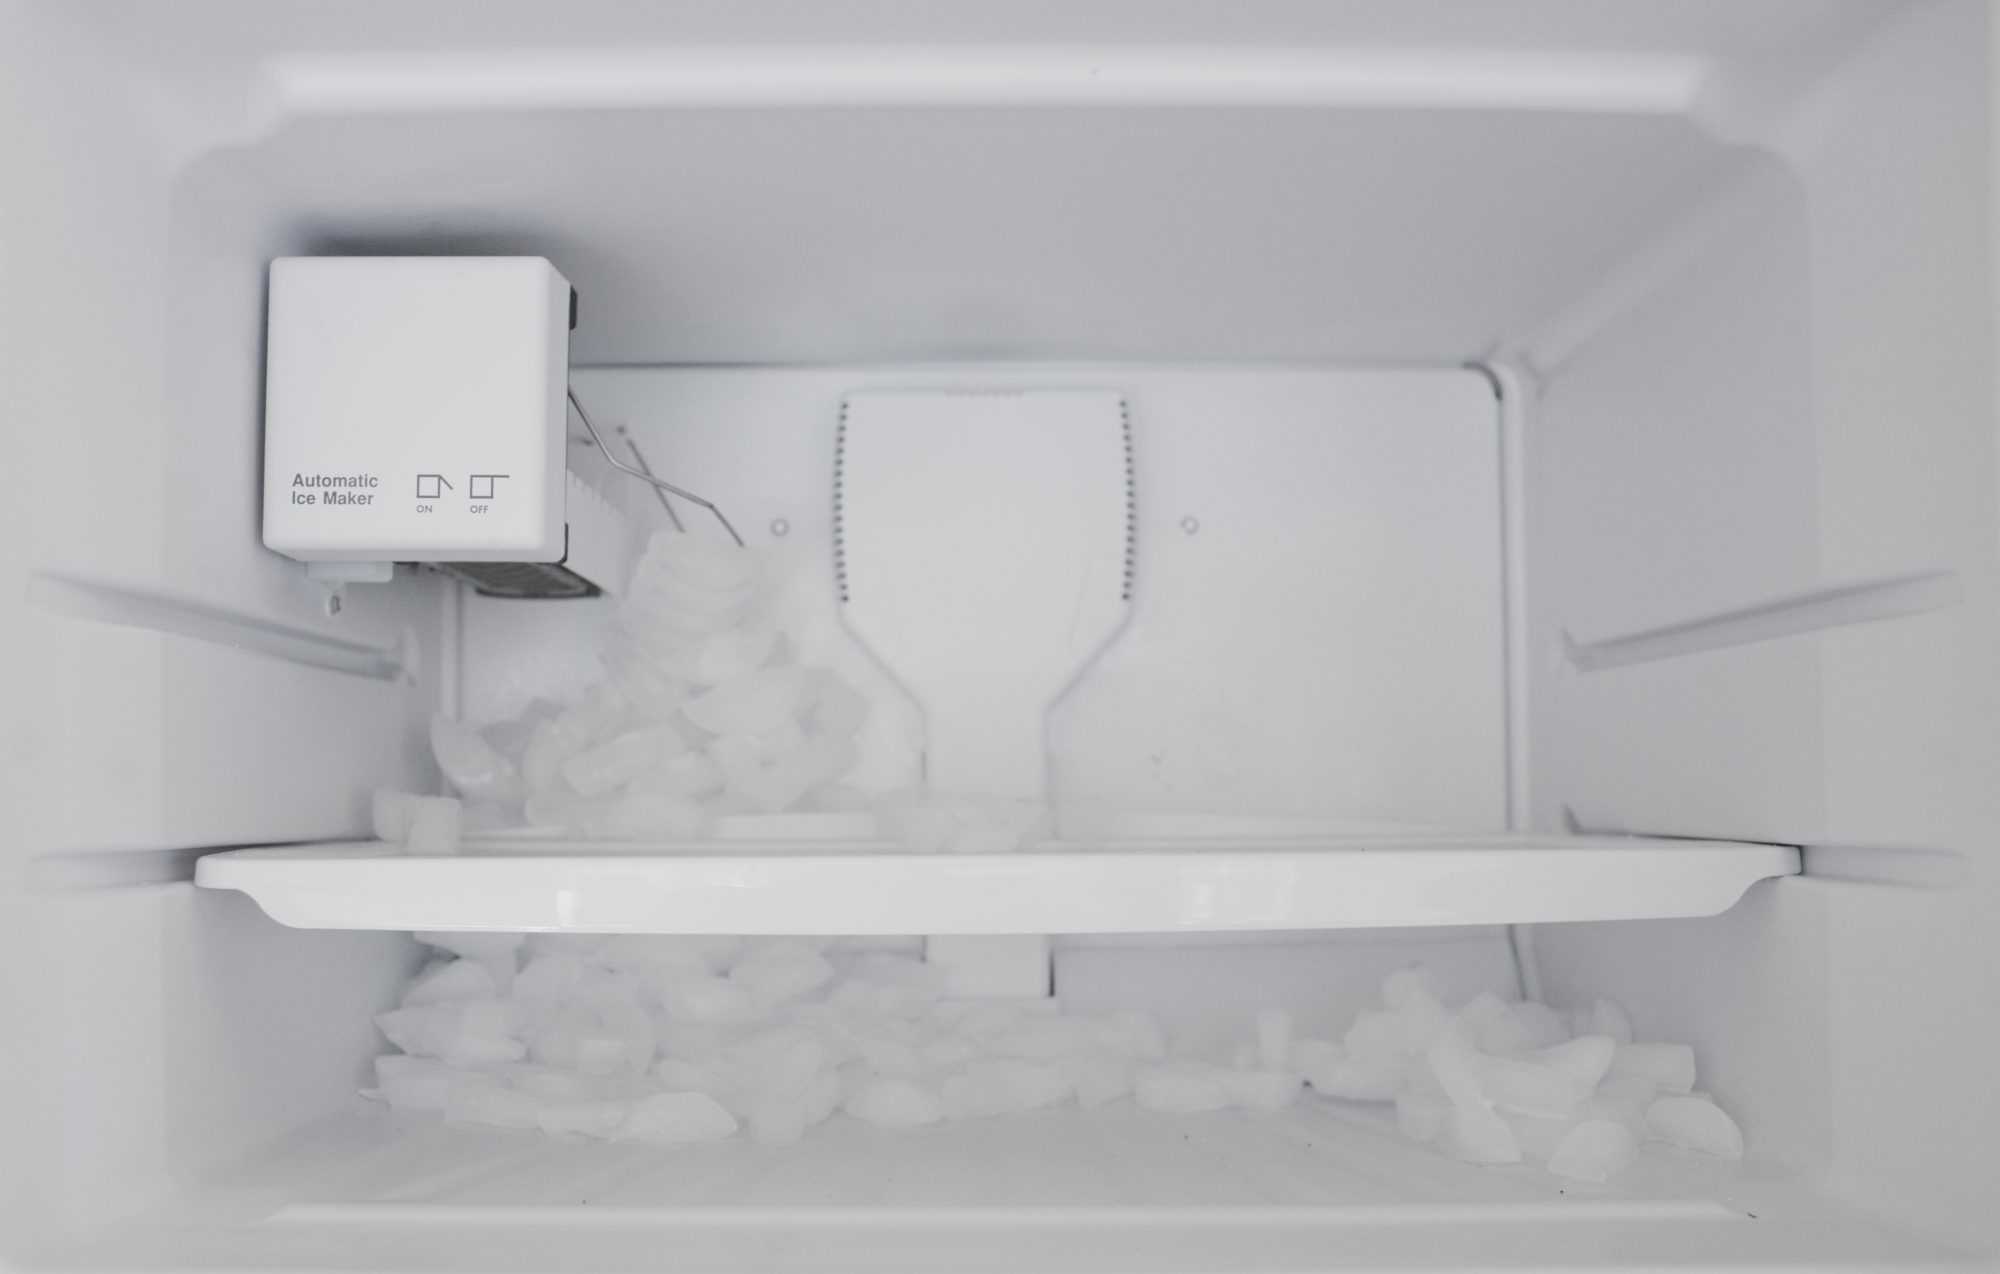 Automatic ice maker malfunction